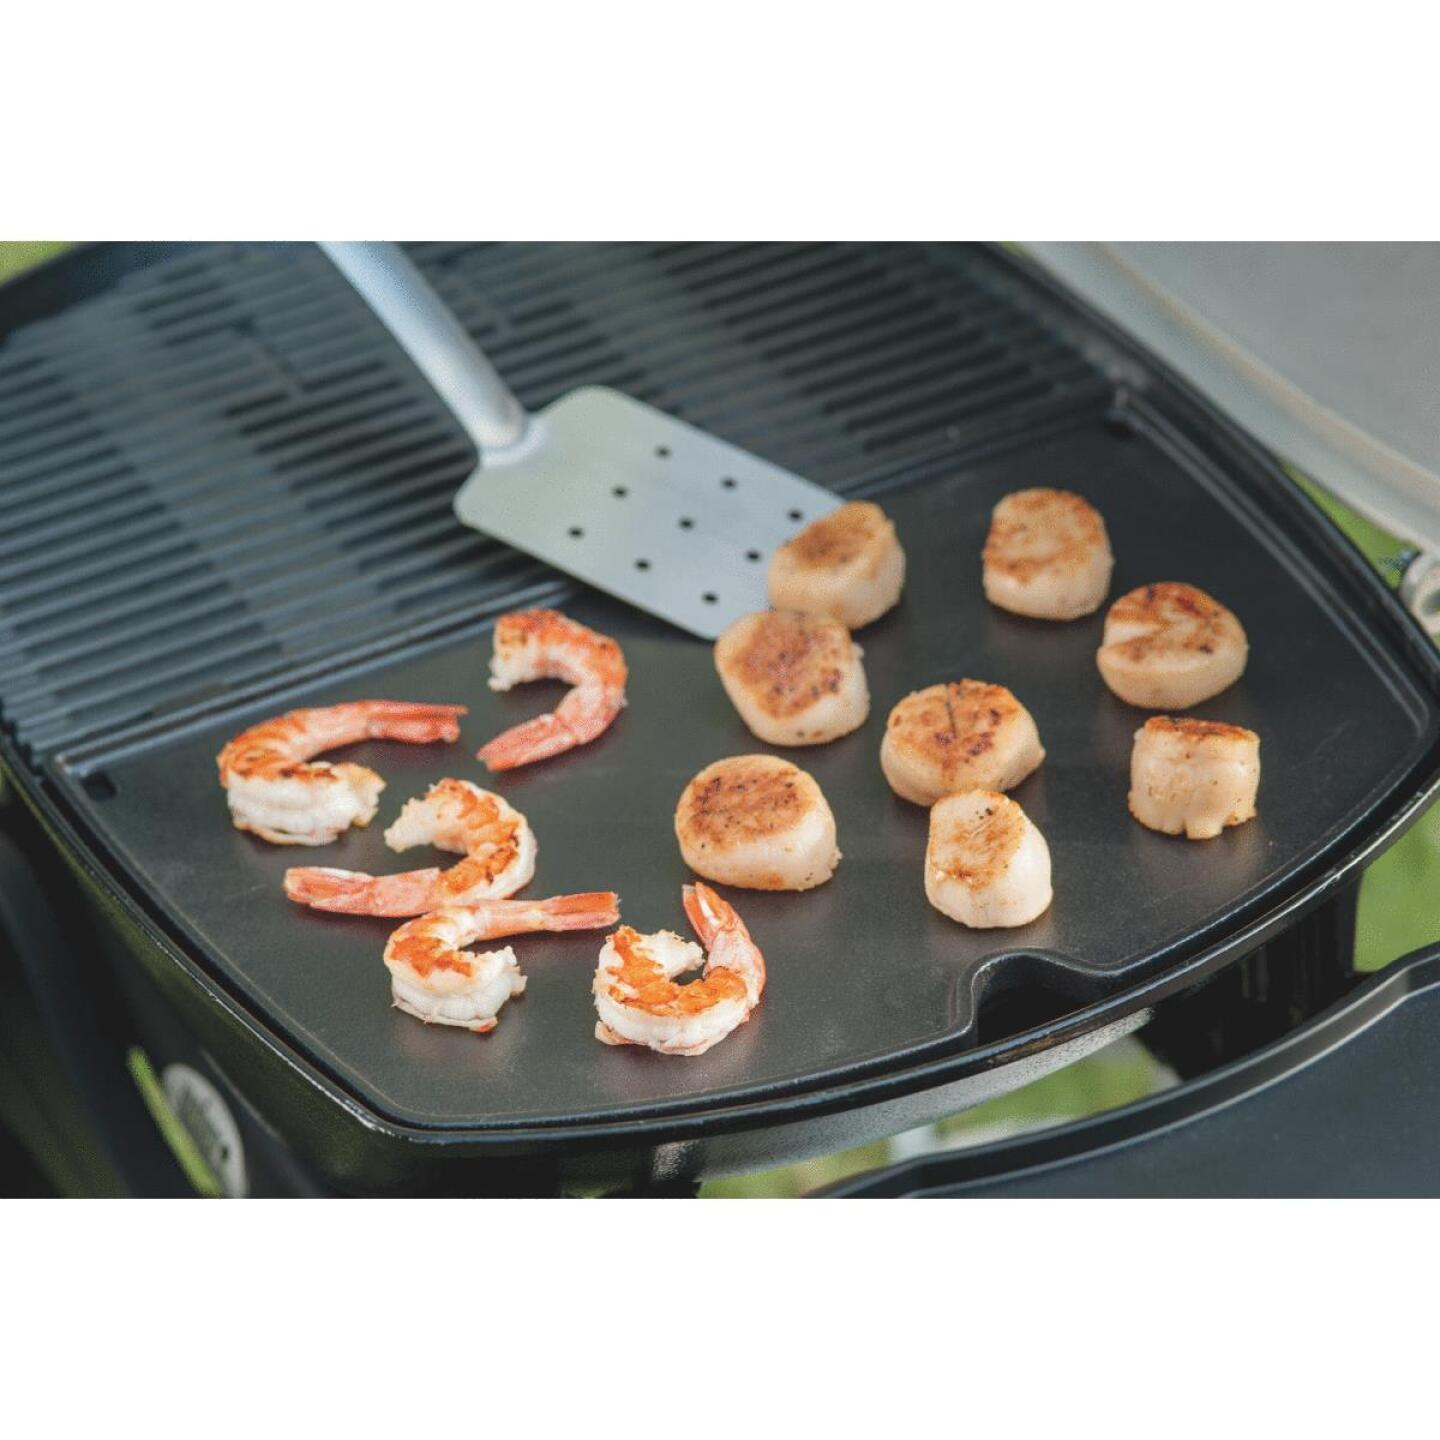 Weber Q 14.1 In. W. x 18.8 In L. Porcelain Enameled Cast Iron 200/2000 Series Gas Grill Griddle Image 2